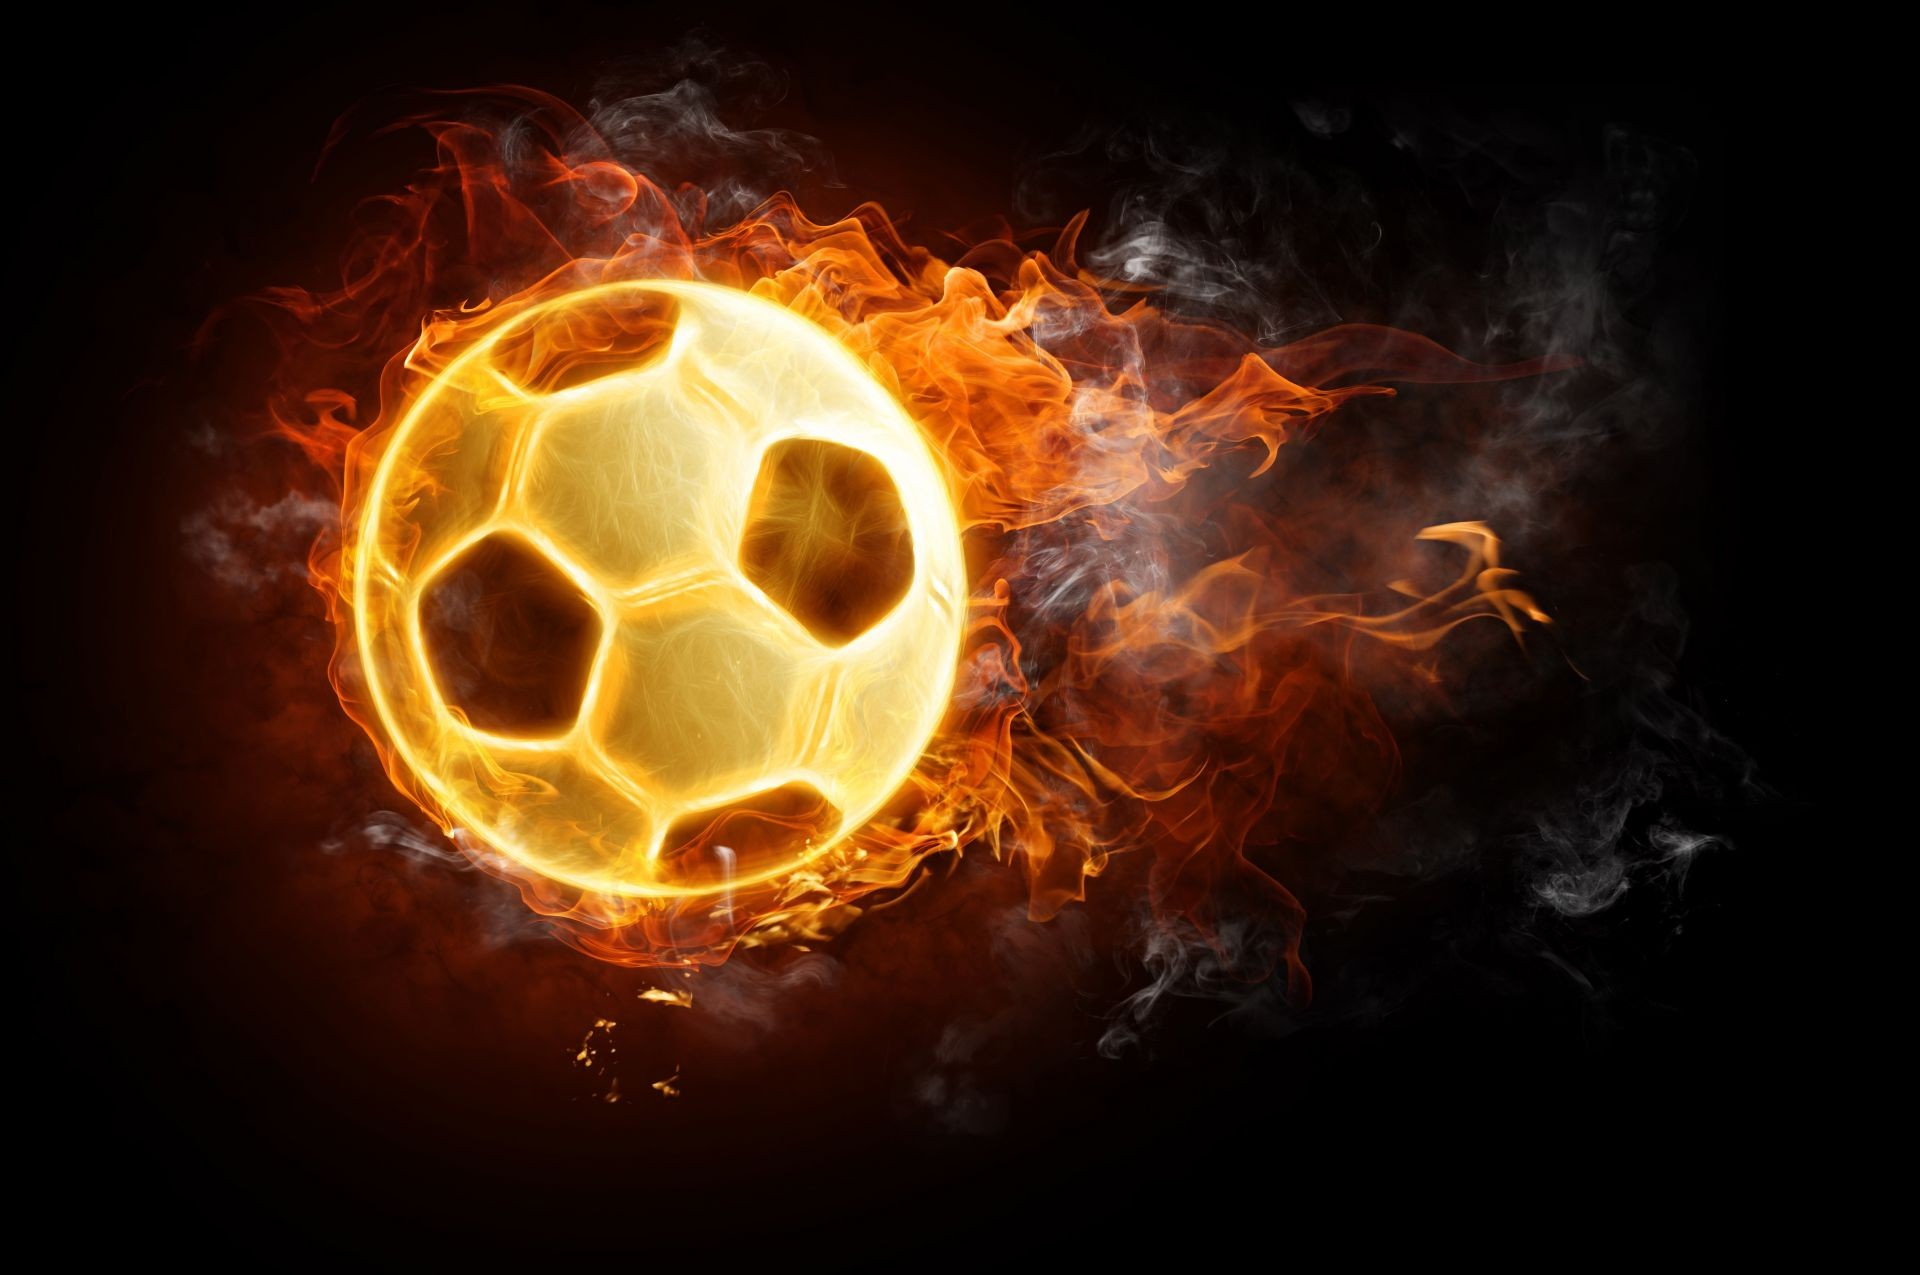 Soccer Ball Wallpapers: Ball Football Fire Black Background Tongues Of Flame